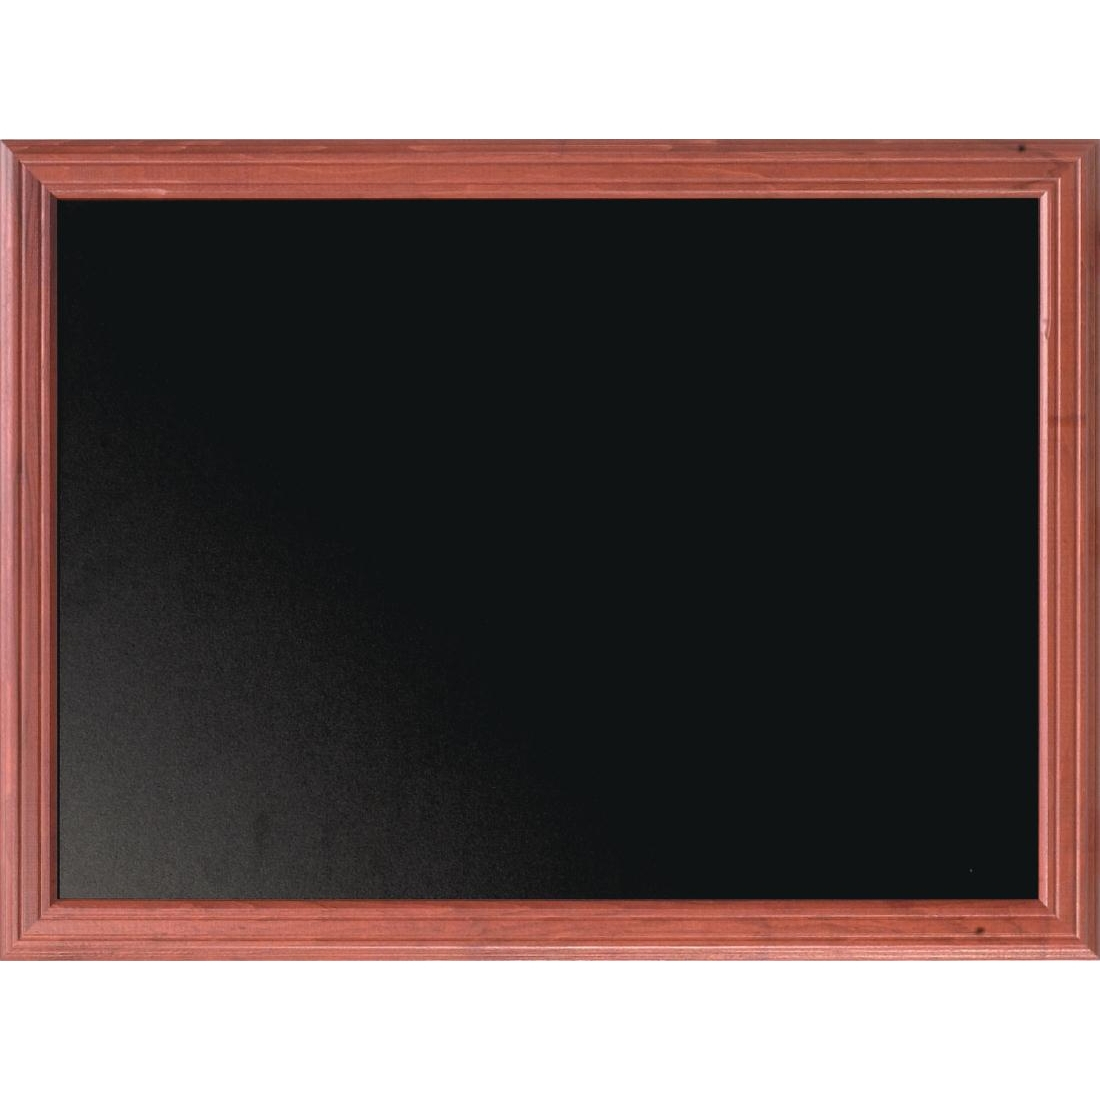 Securit Mohogany Effect Blackboard 80 x 100cm